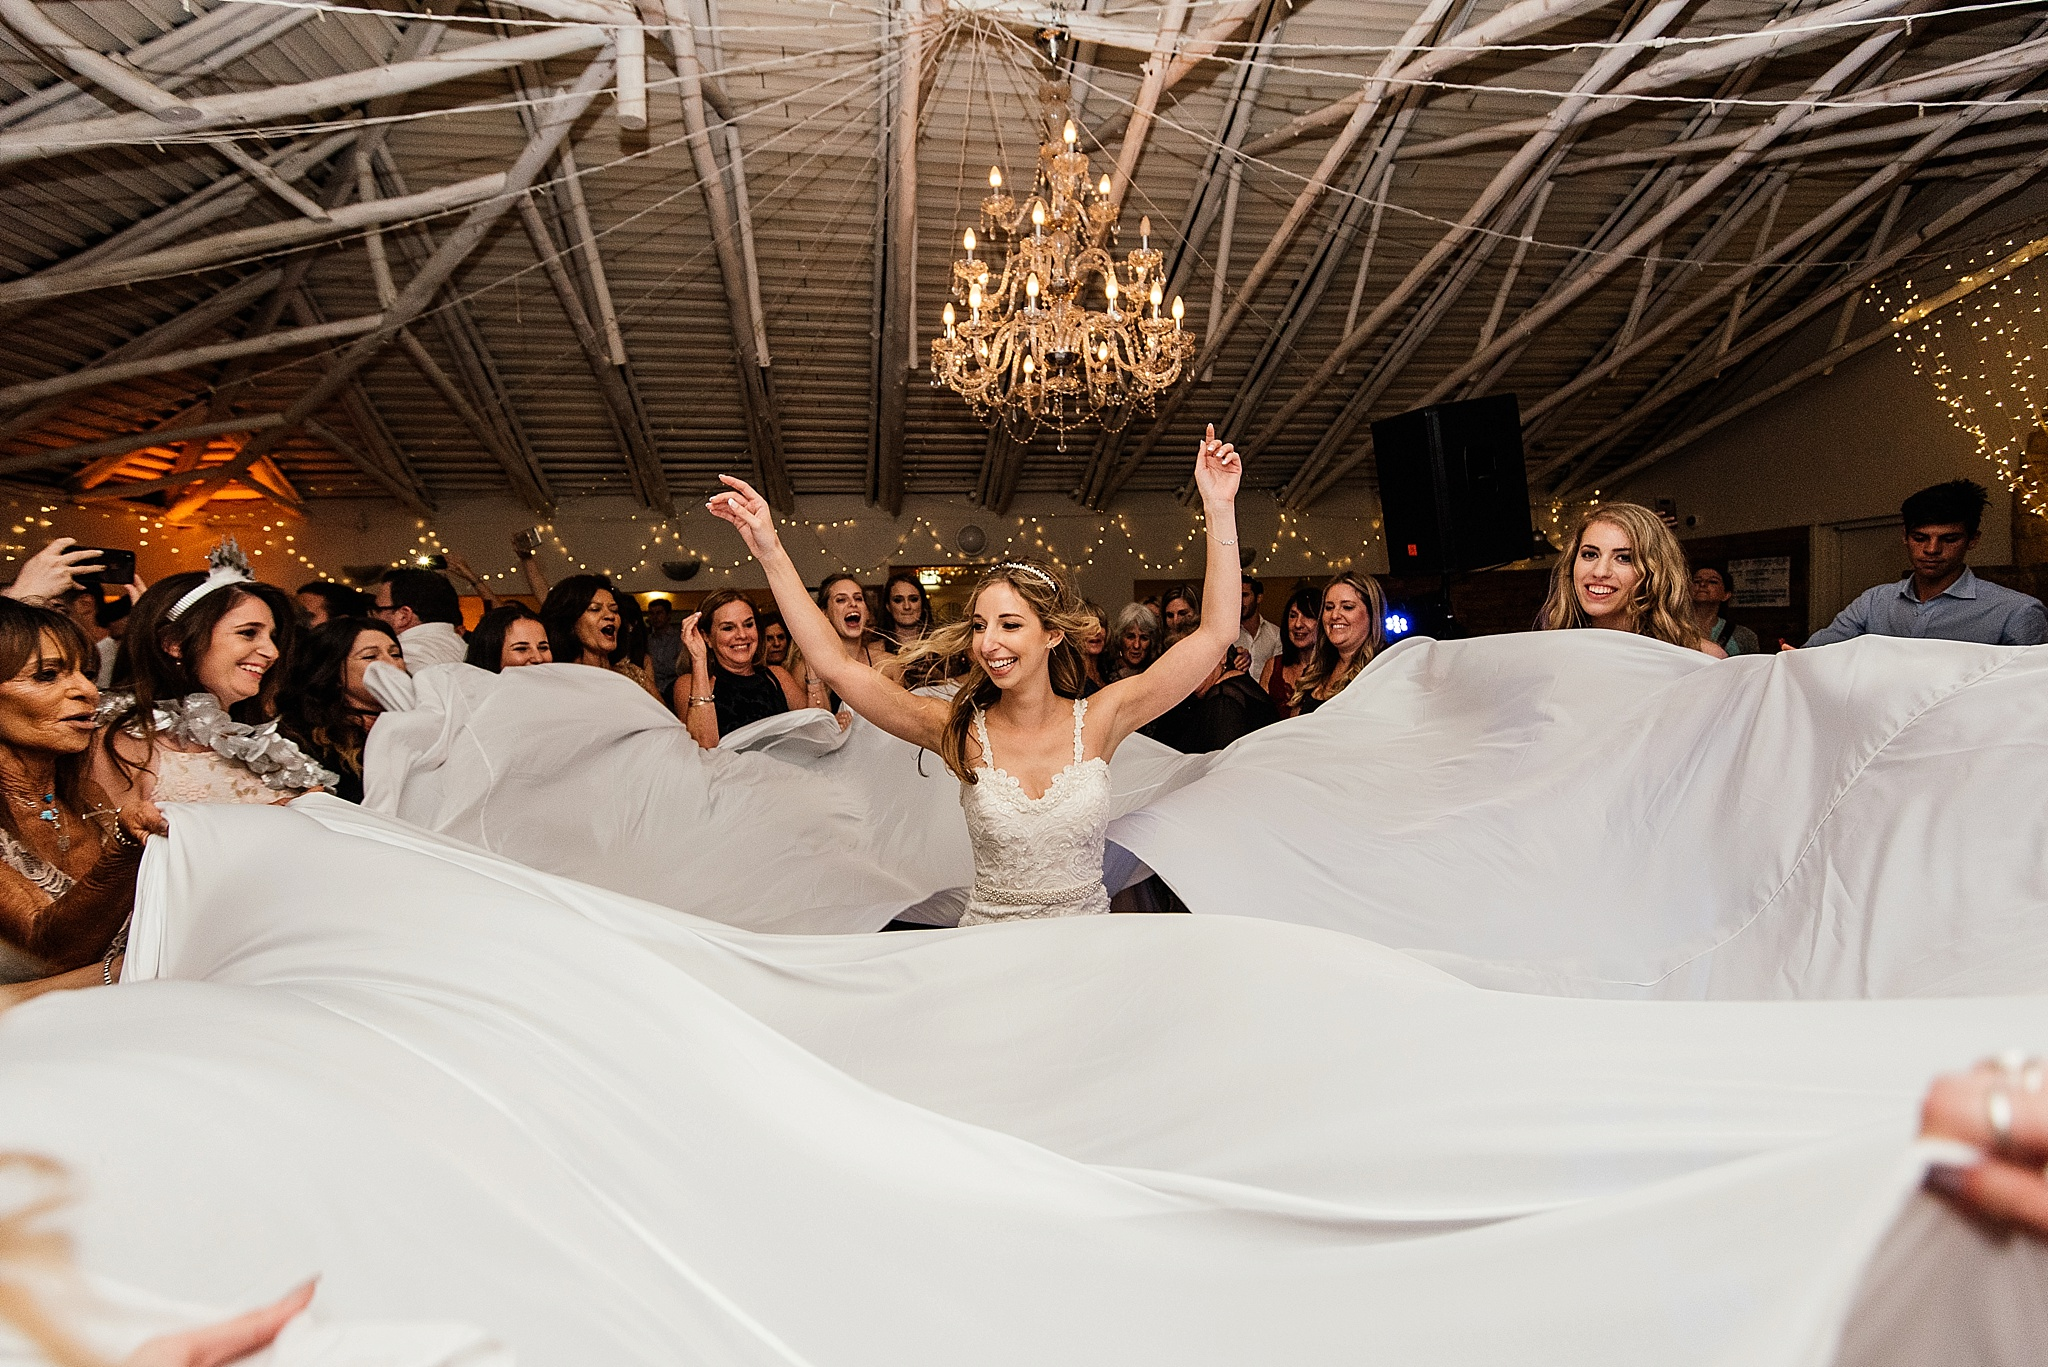 Cape Town Wedding Photographer Darren Bester - SuikerBossie - Stephen and Mikaela_0056.jpg